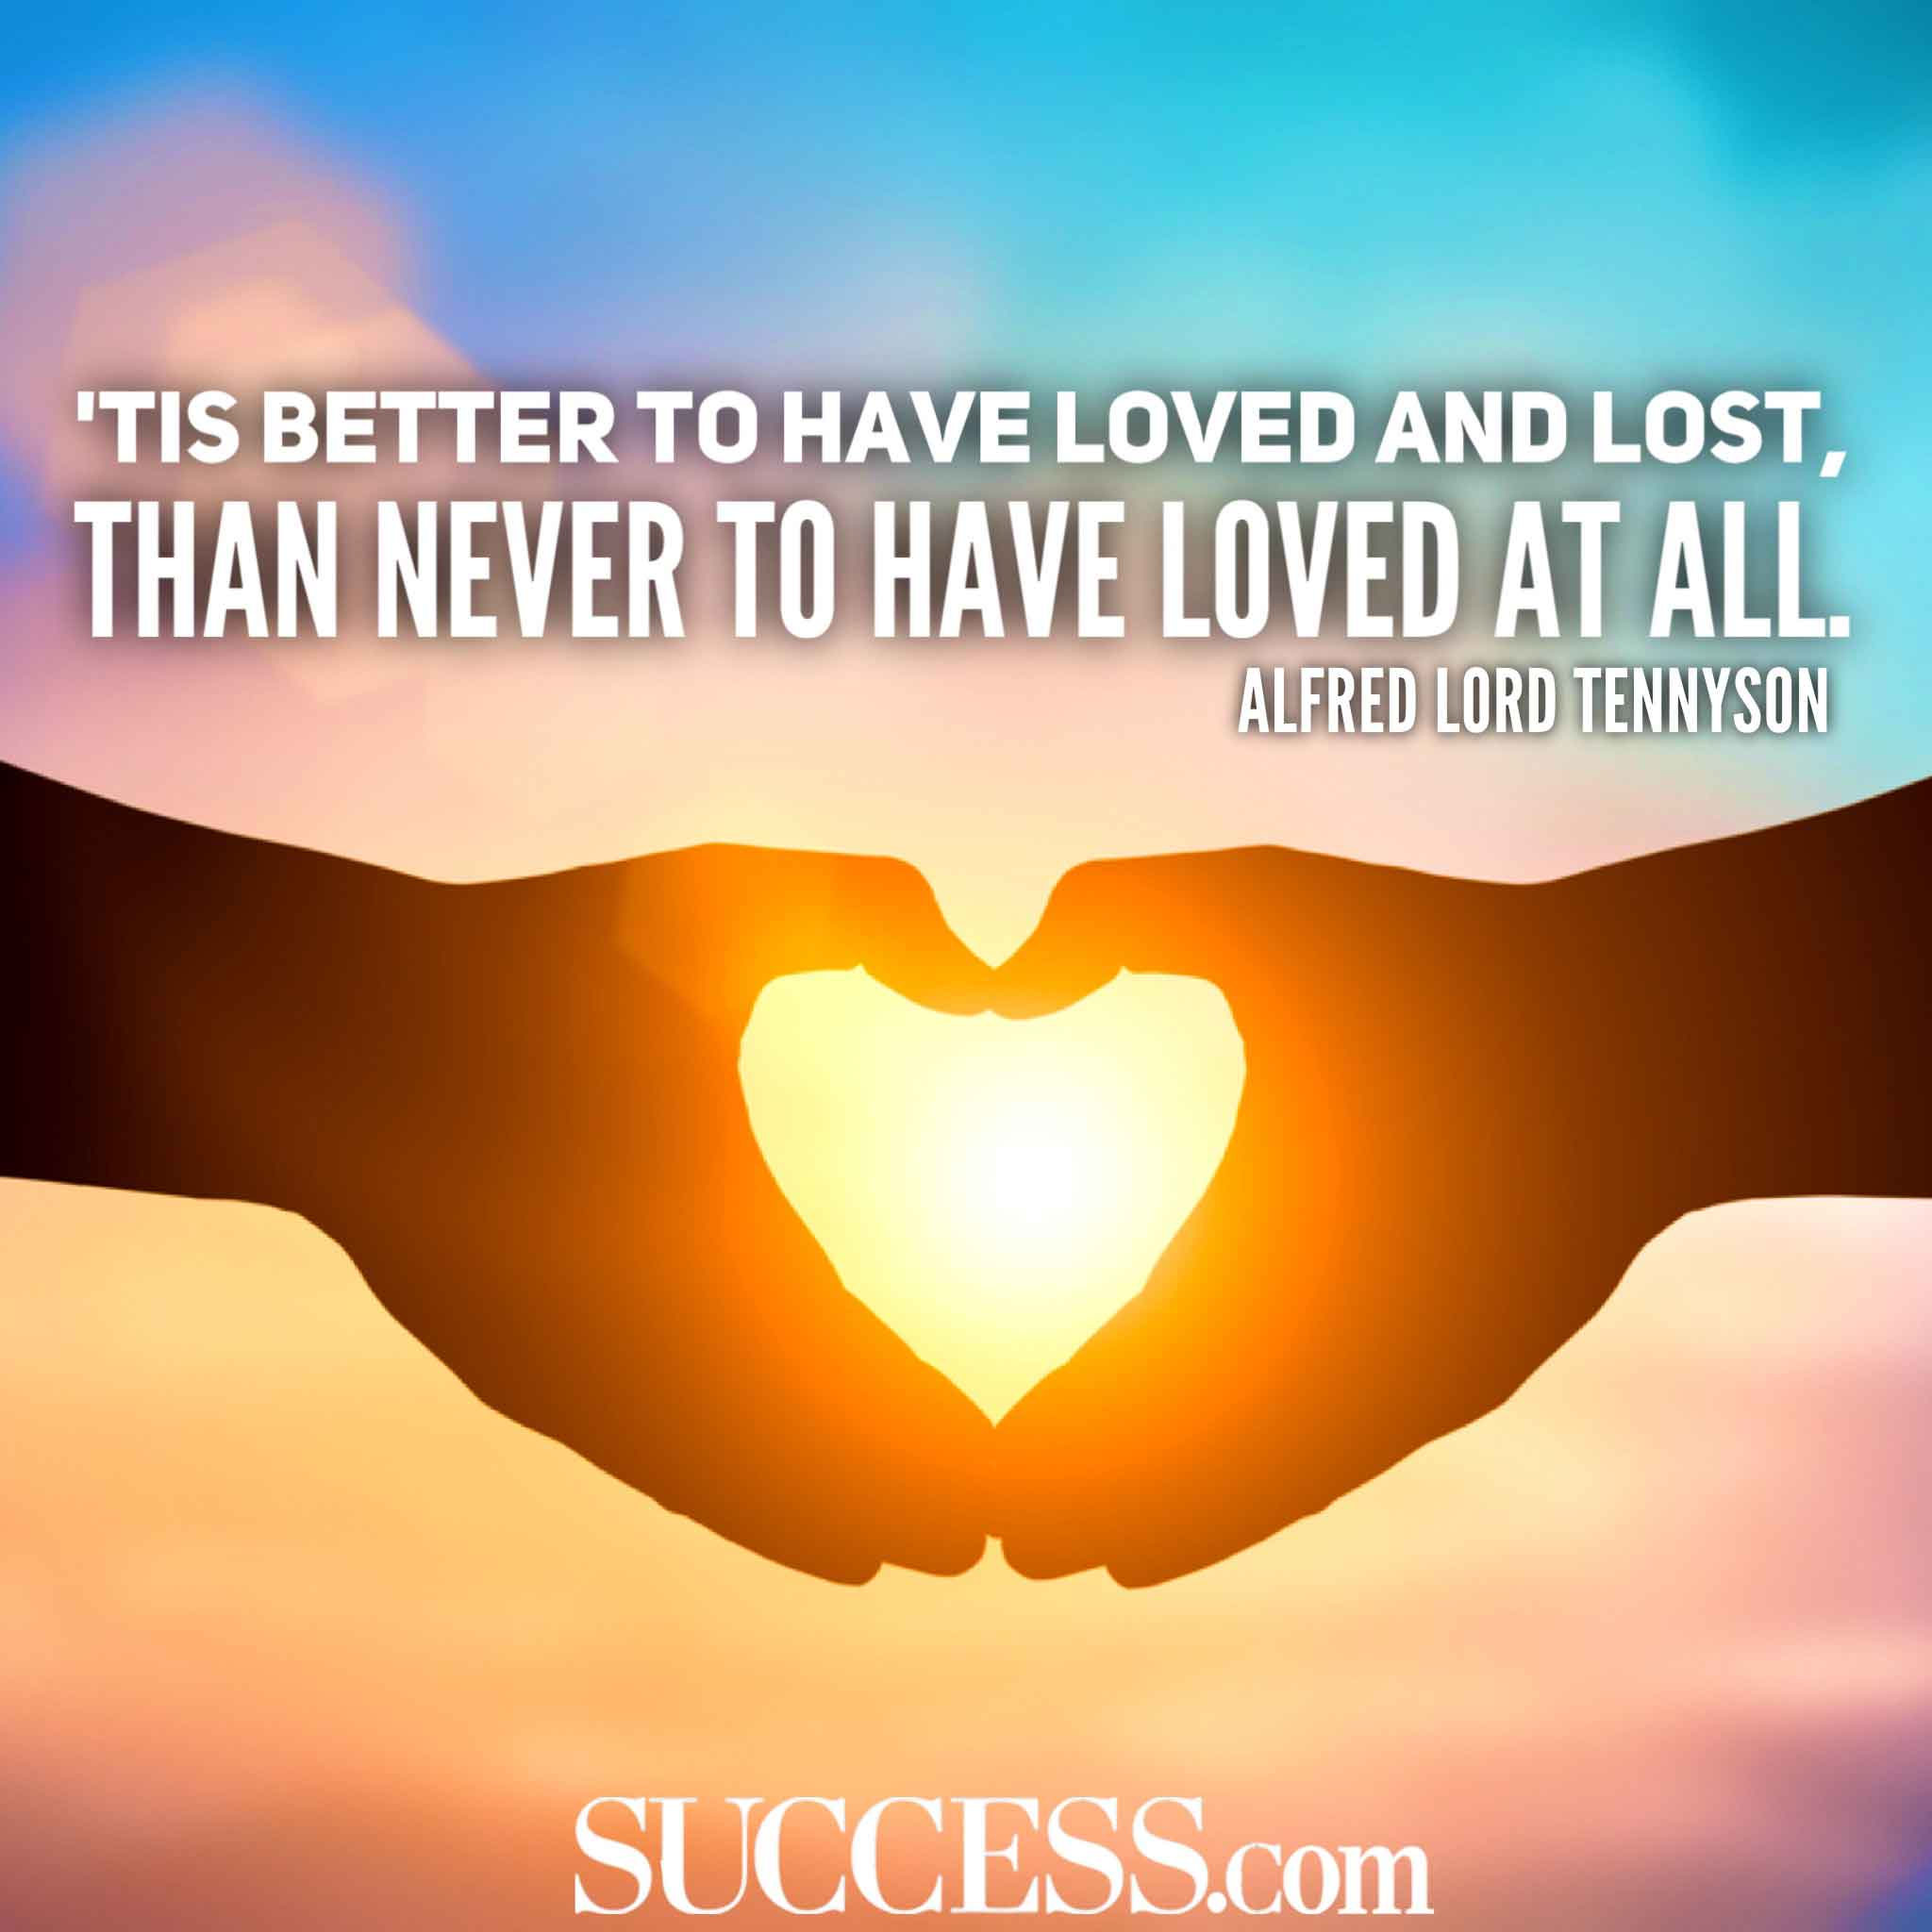 Quotes About Love: 17 Timeless Love Quotes